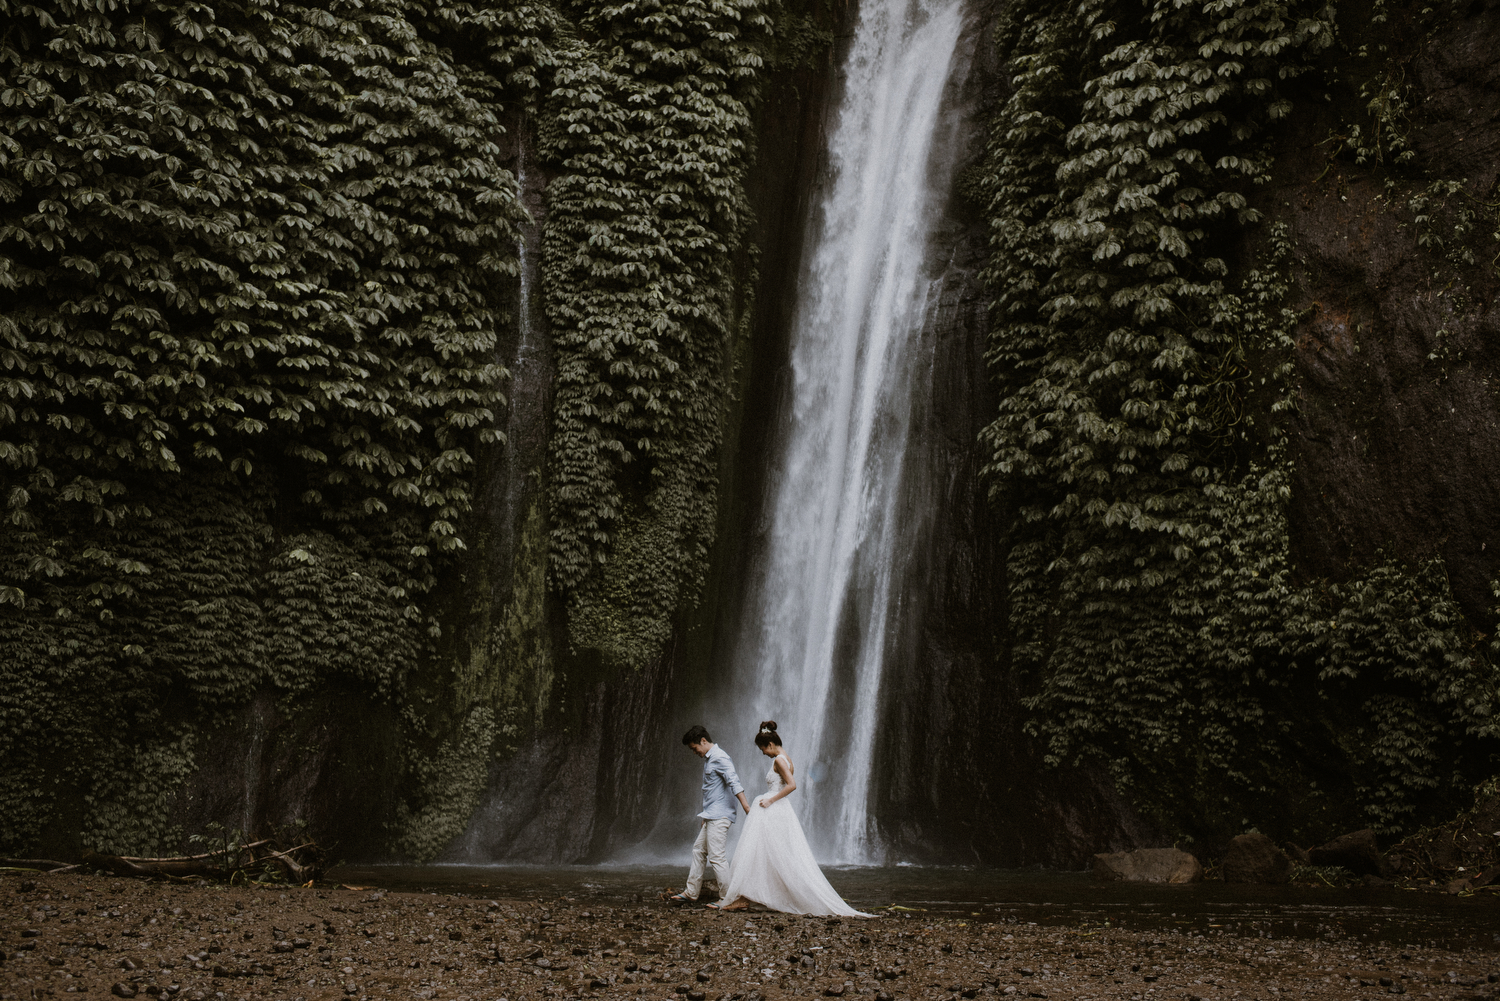 preweddinginbali-bali-batur-ubud-diktatphotography-engagemnet-baliweddingphotographer-weddinginbali-34